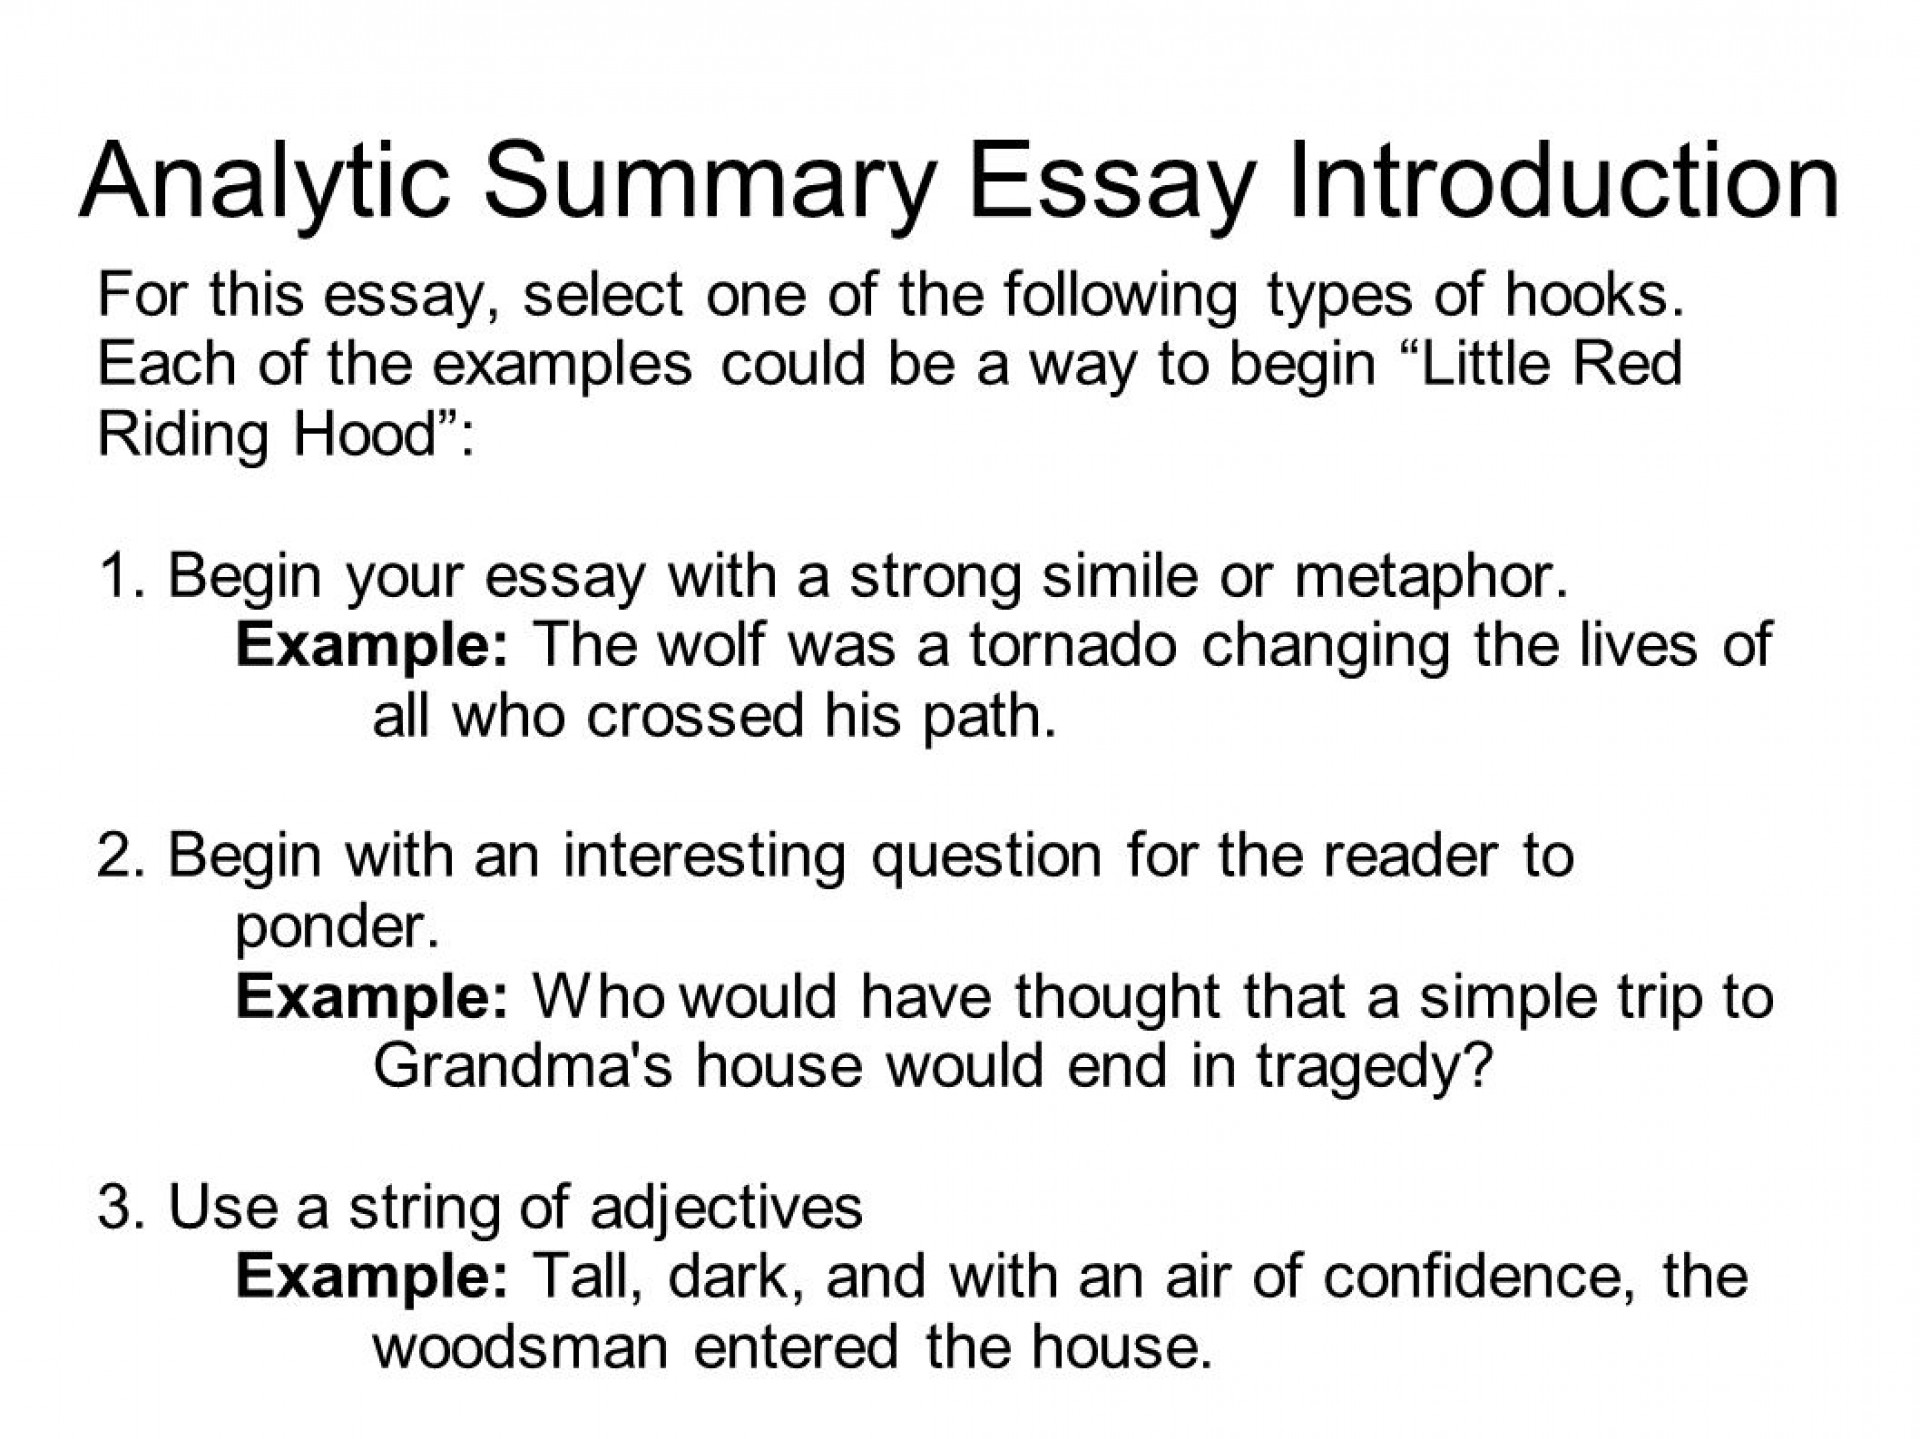 006 Essay Example Examples Of Hooks For Essays Co Sli Expository Comparison Writing Narrative Argumentative Types High Sensational Some Opinion 1920